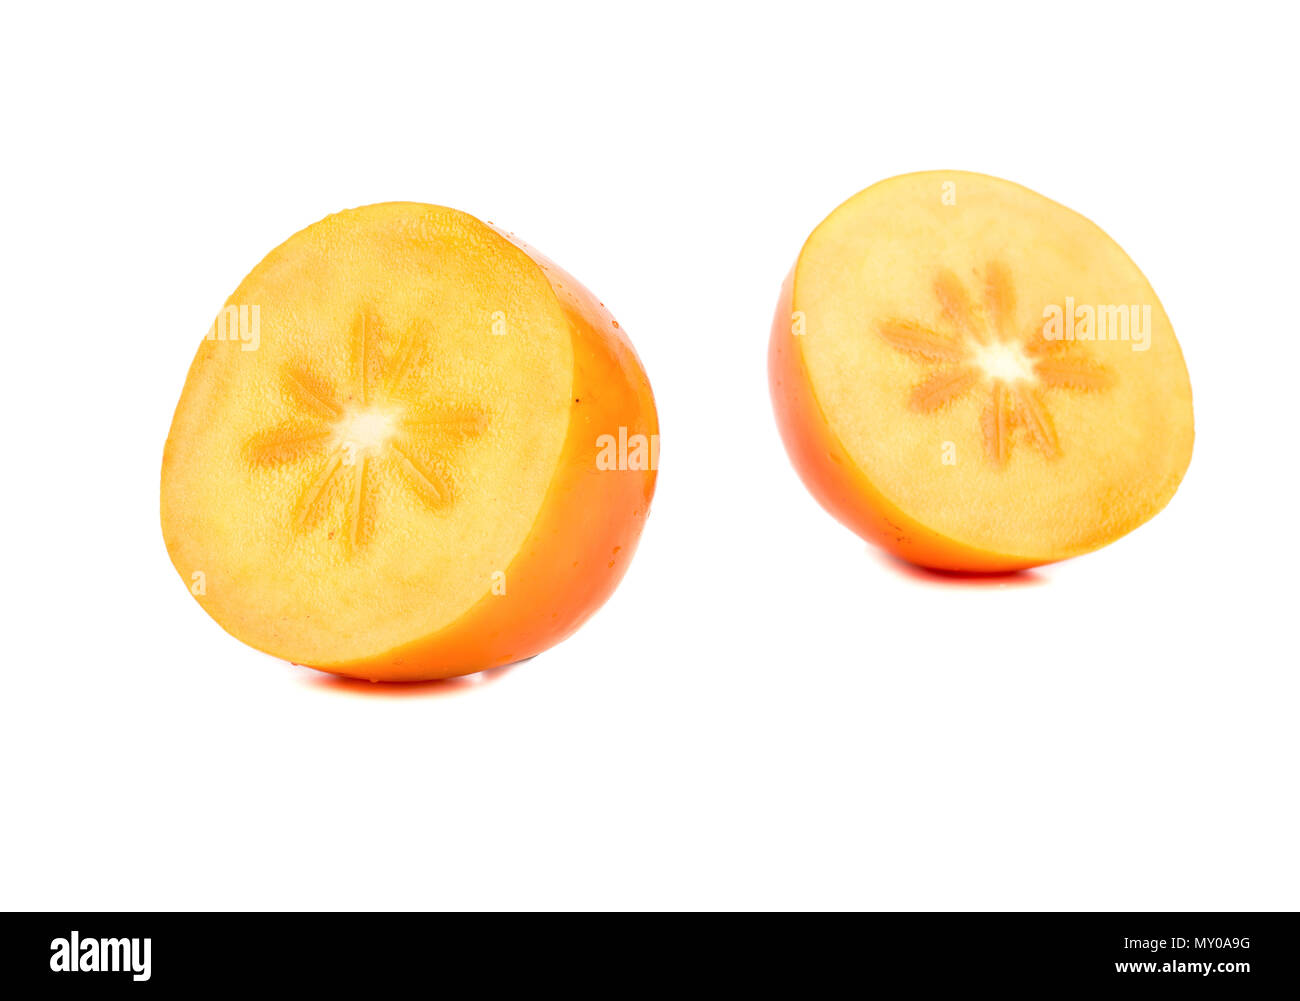 Ripe fruit of a persimmon cut into two halves on white background - Stock Image